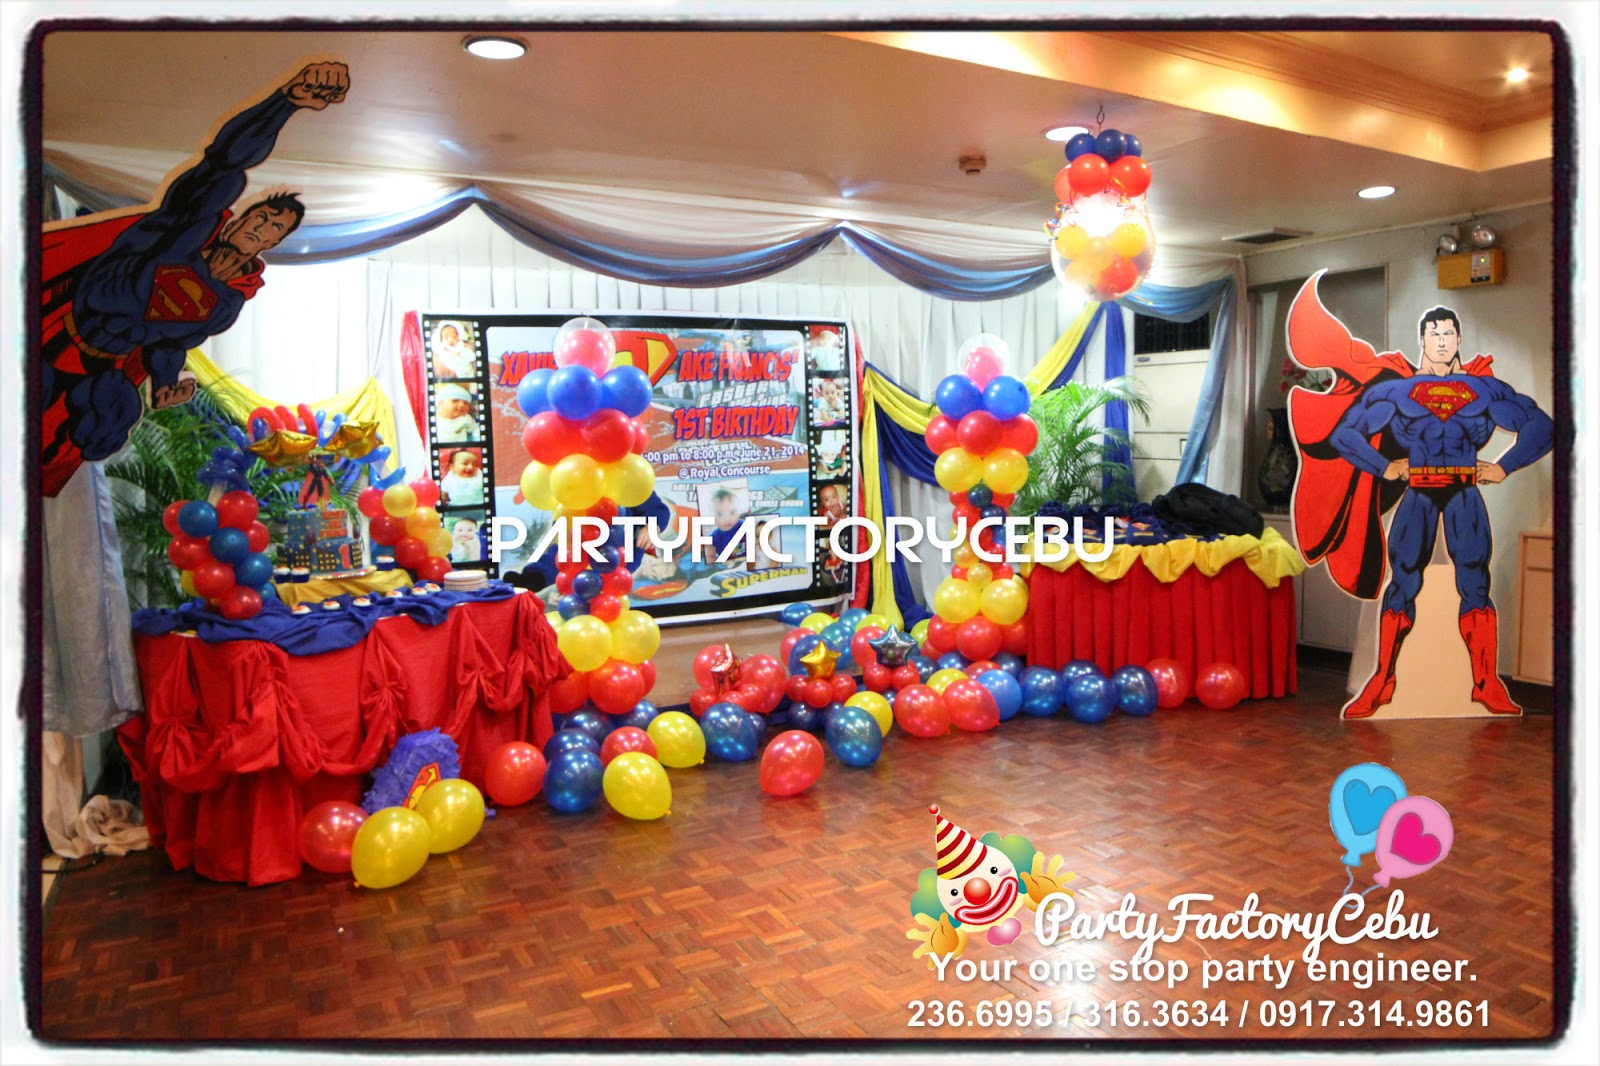 Welcome to partyfactory cebu jake francis 1st superman birthday party for 1st birthday decoration pictures